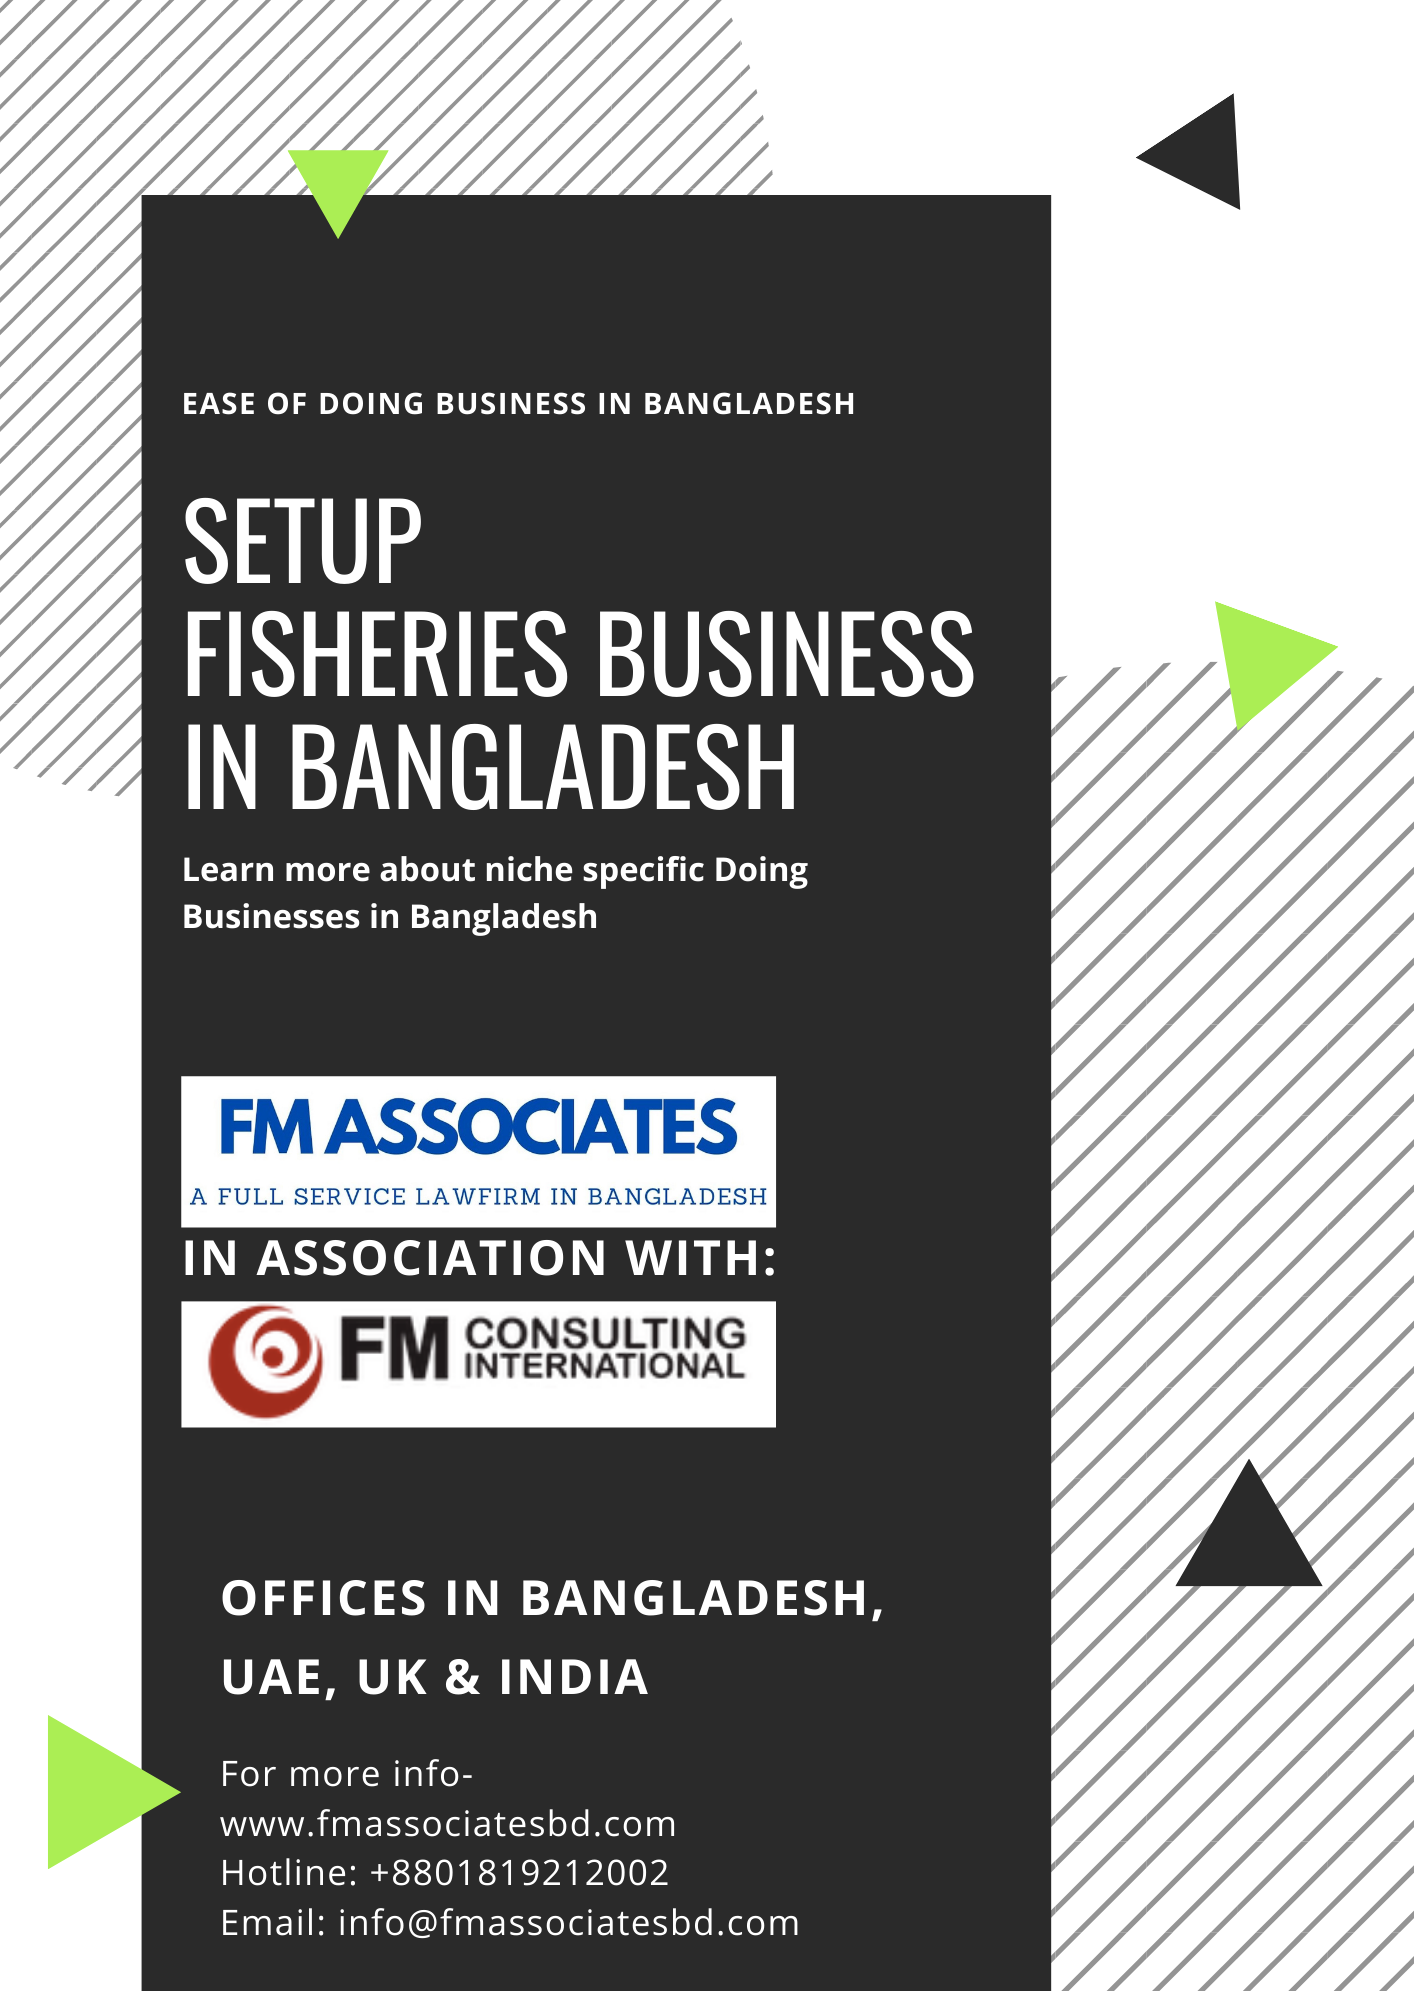 How to Setup Fisheries Business in Bangladesh